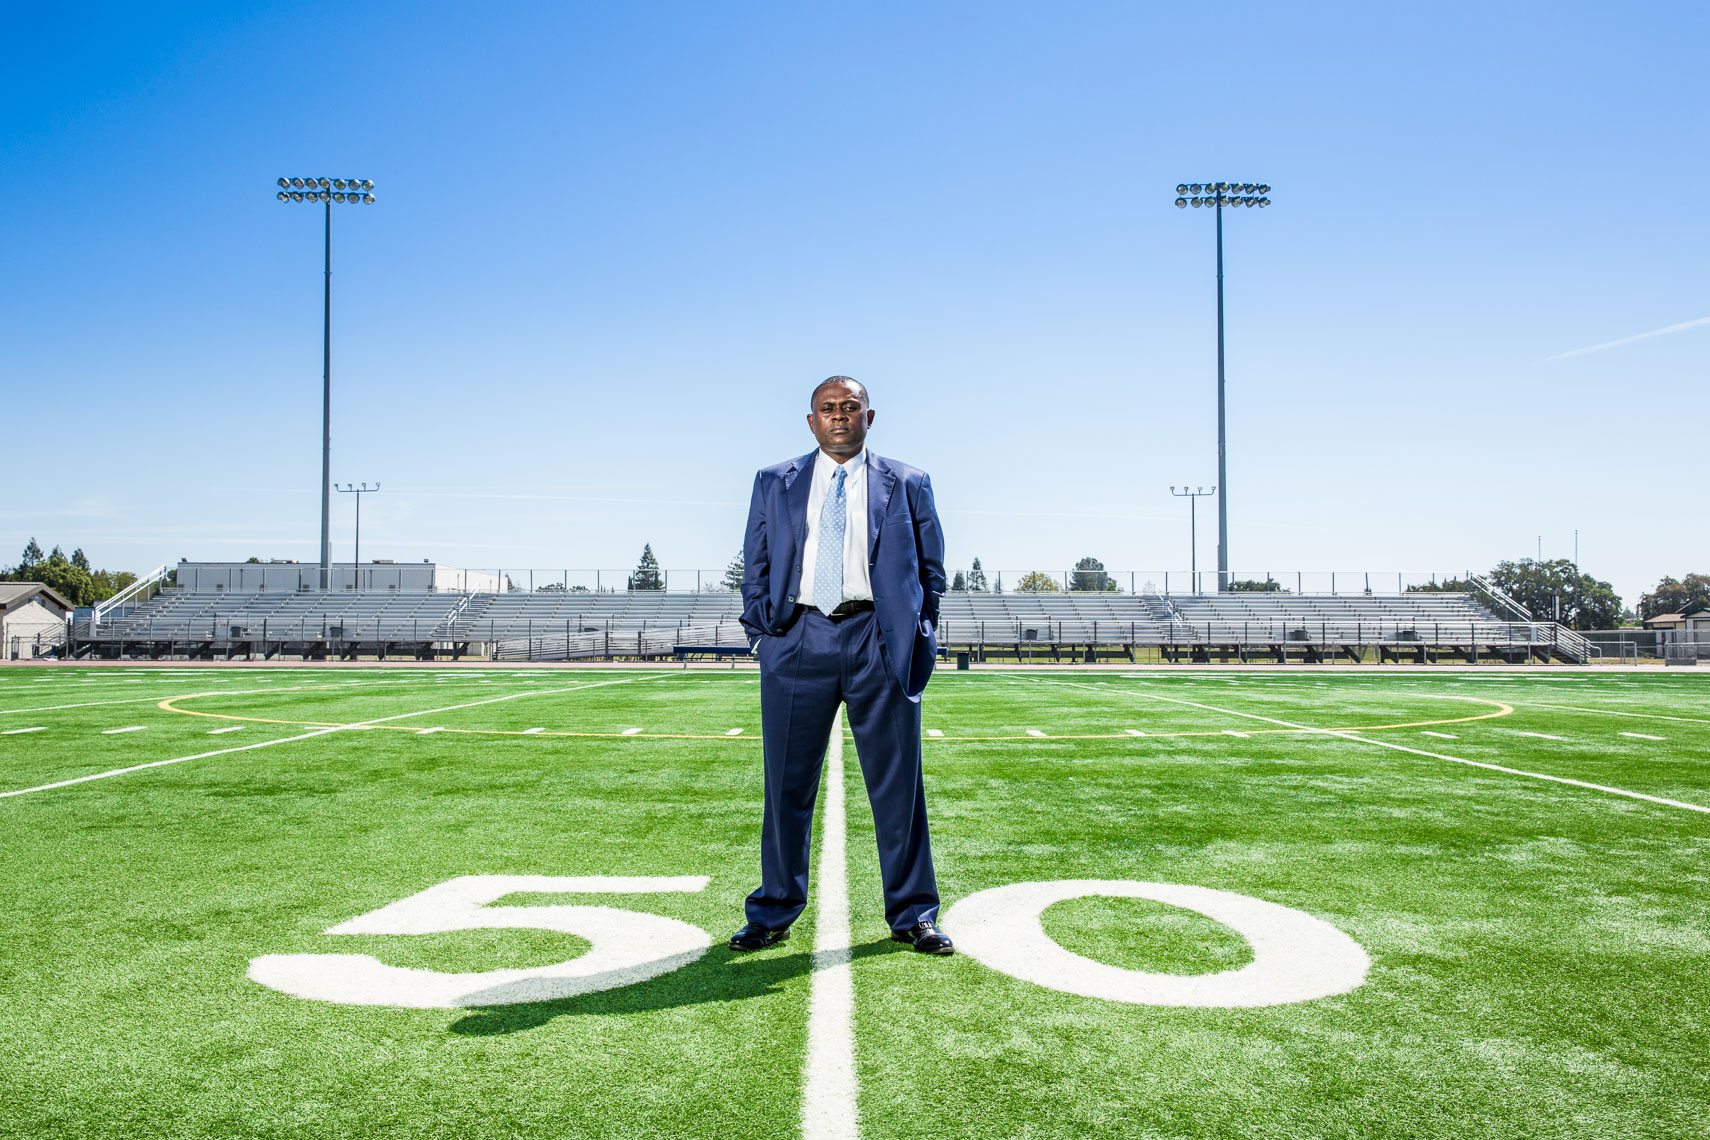 Dr. Bennet Omalu, Concussion doctor who took on the NFL, photographed on location by editorial photographer Robert Houser